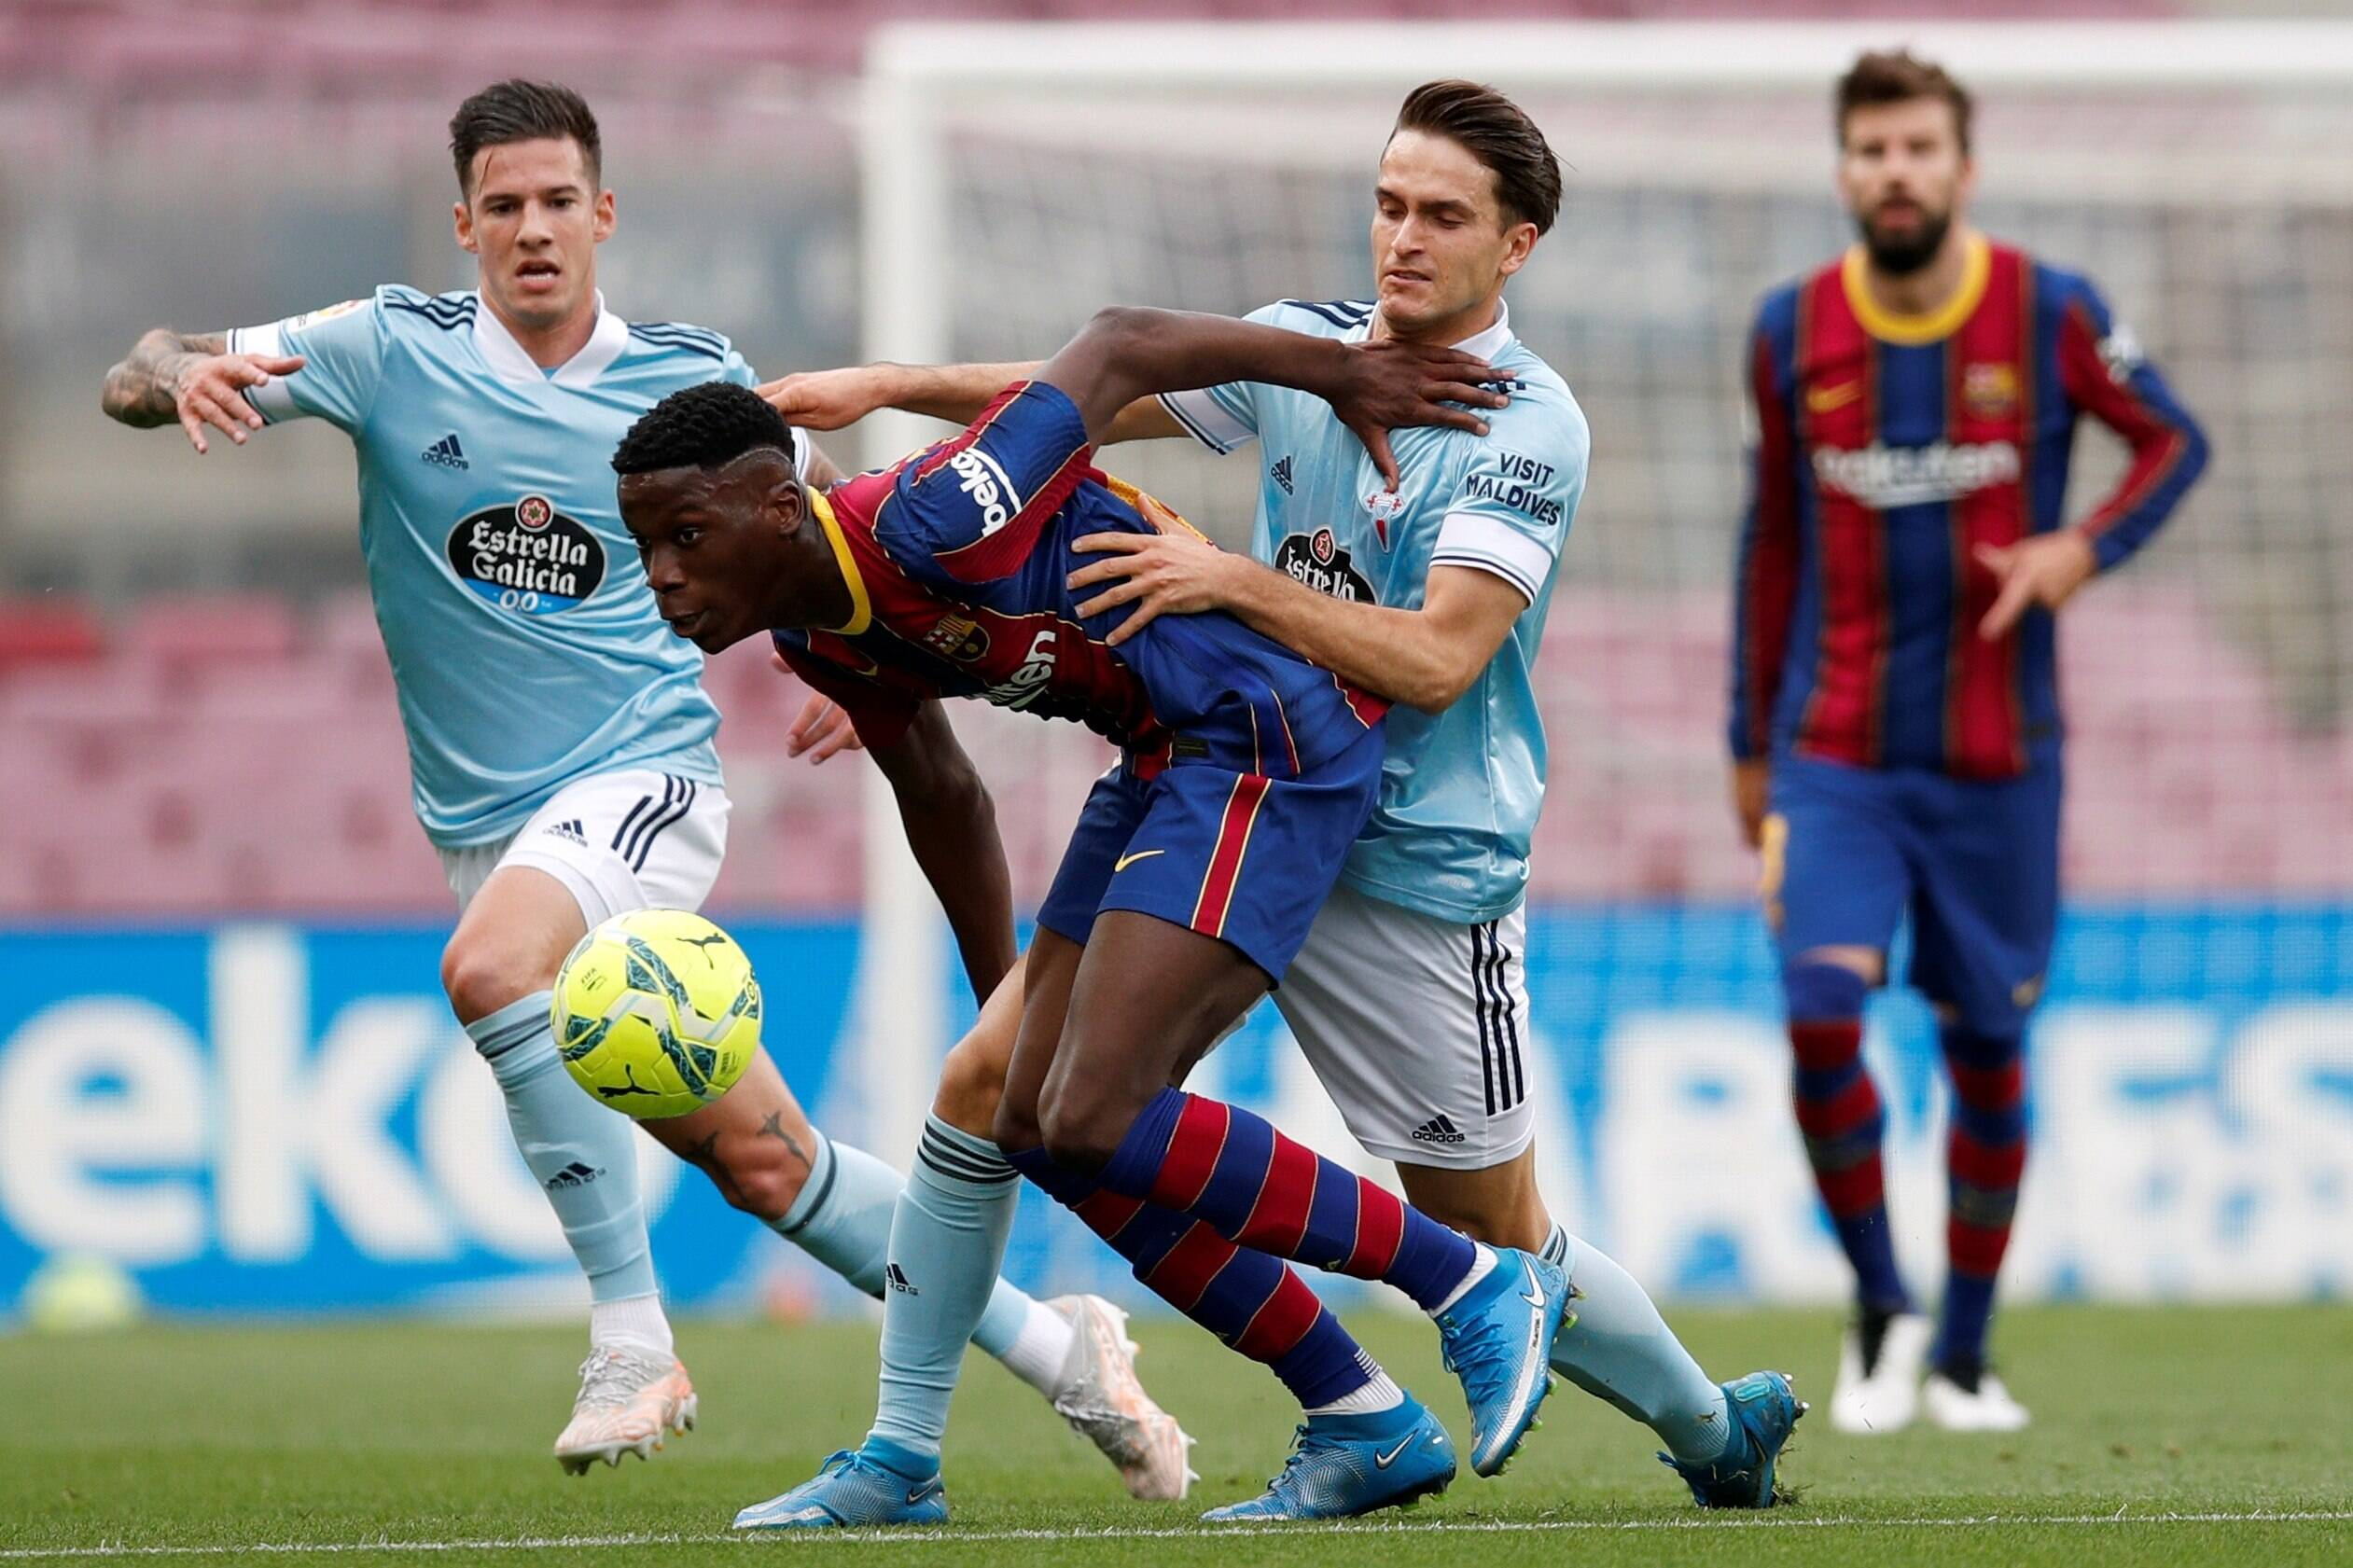 Barcelona's Moriba ready to leave amid Chelsea interest (Moriba is seen in the picture)